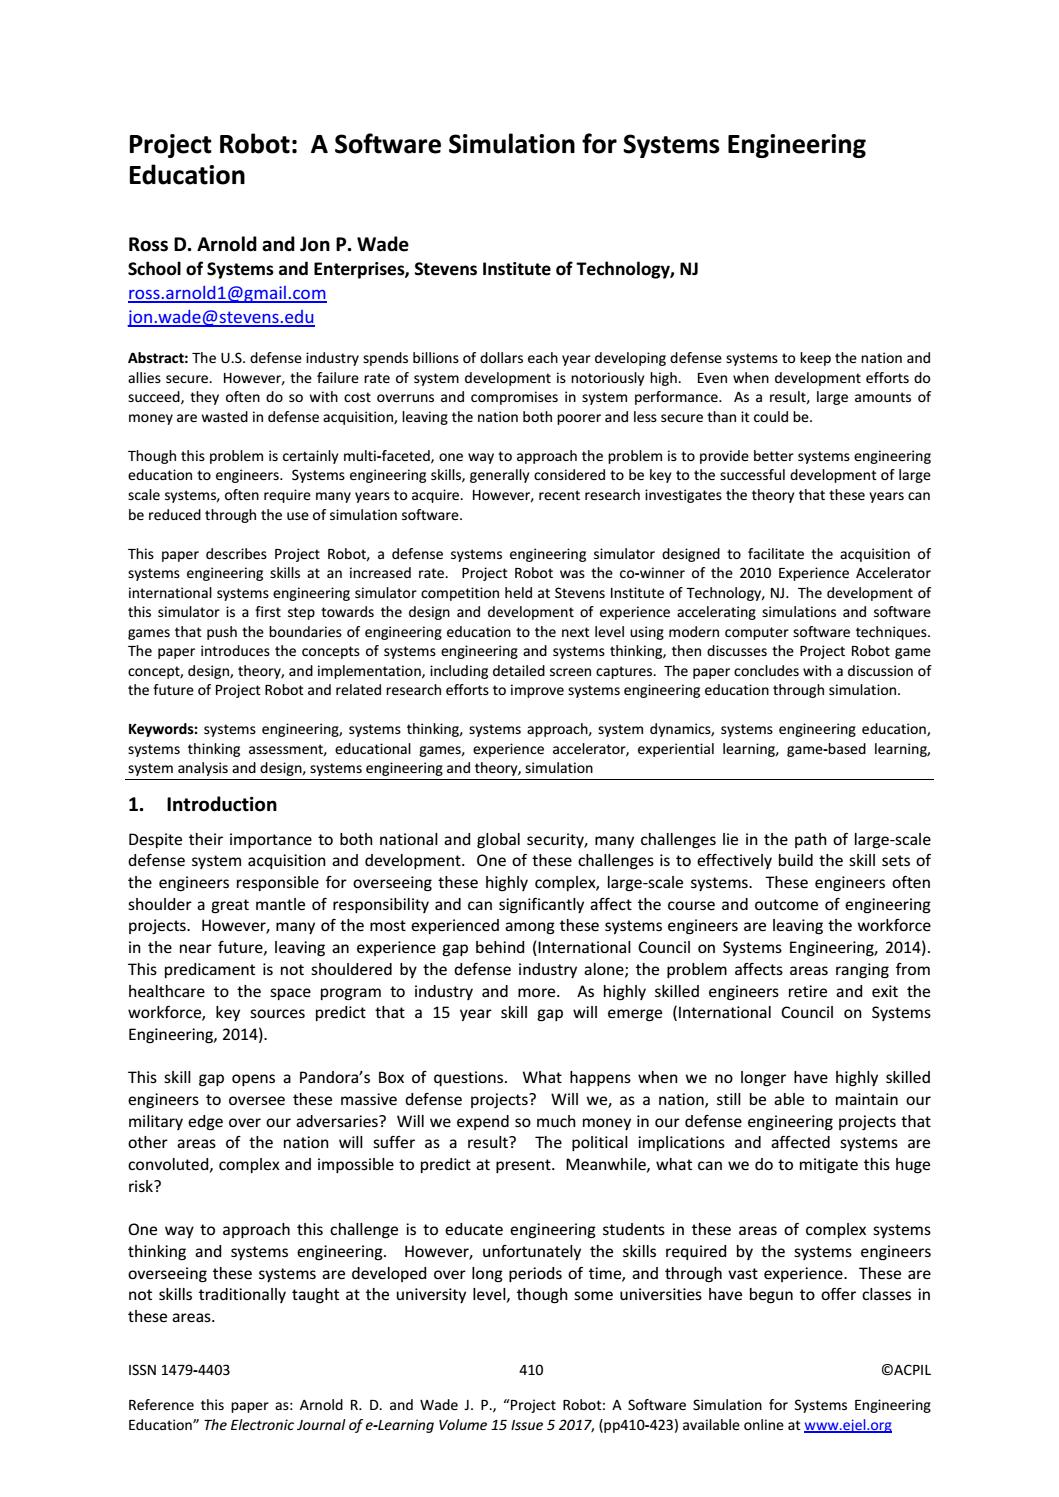 Project Robot A Software Simulation For Systems Engineering Education By Academic Conferences And Publishing International Issuu